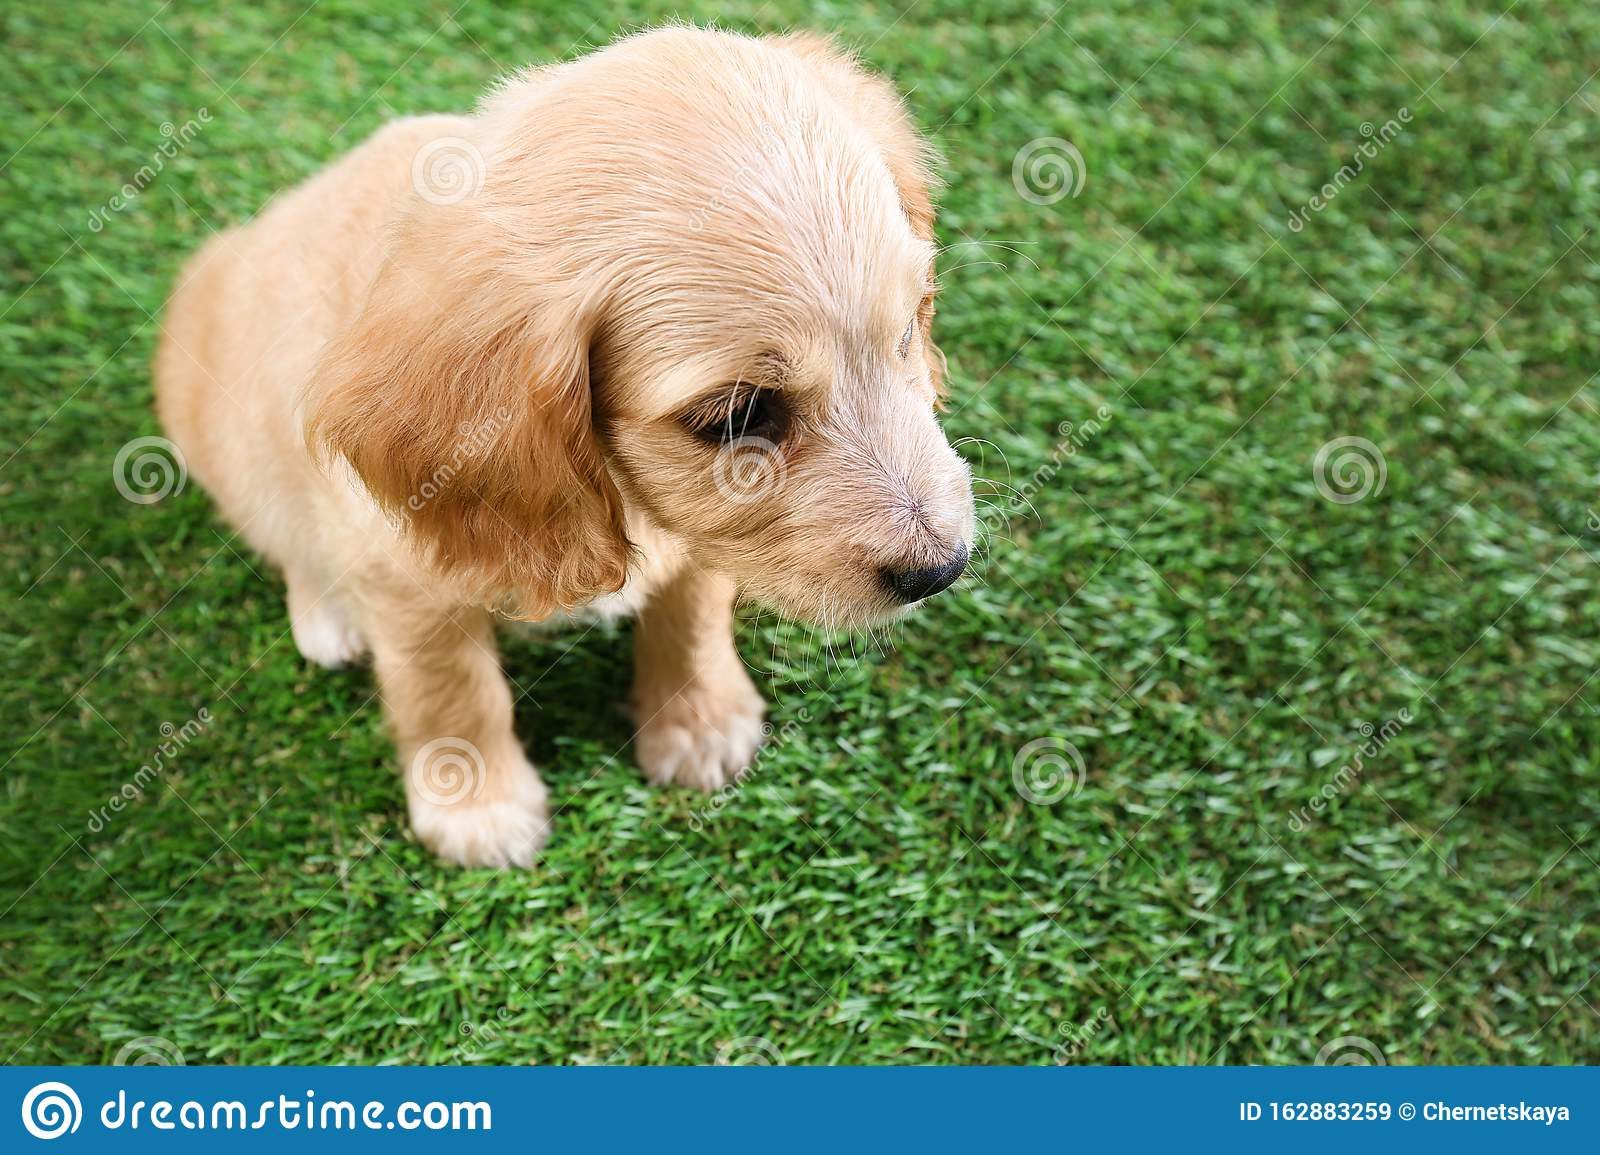 Cute English Cocker Spaniel Puppy On Grass Space For Text Stock Image Image Of Adorable Space 162883259